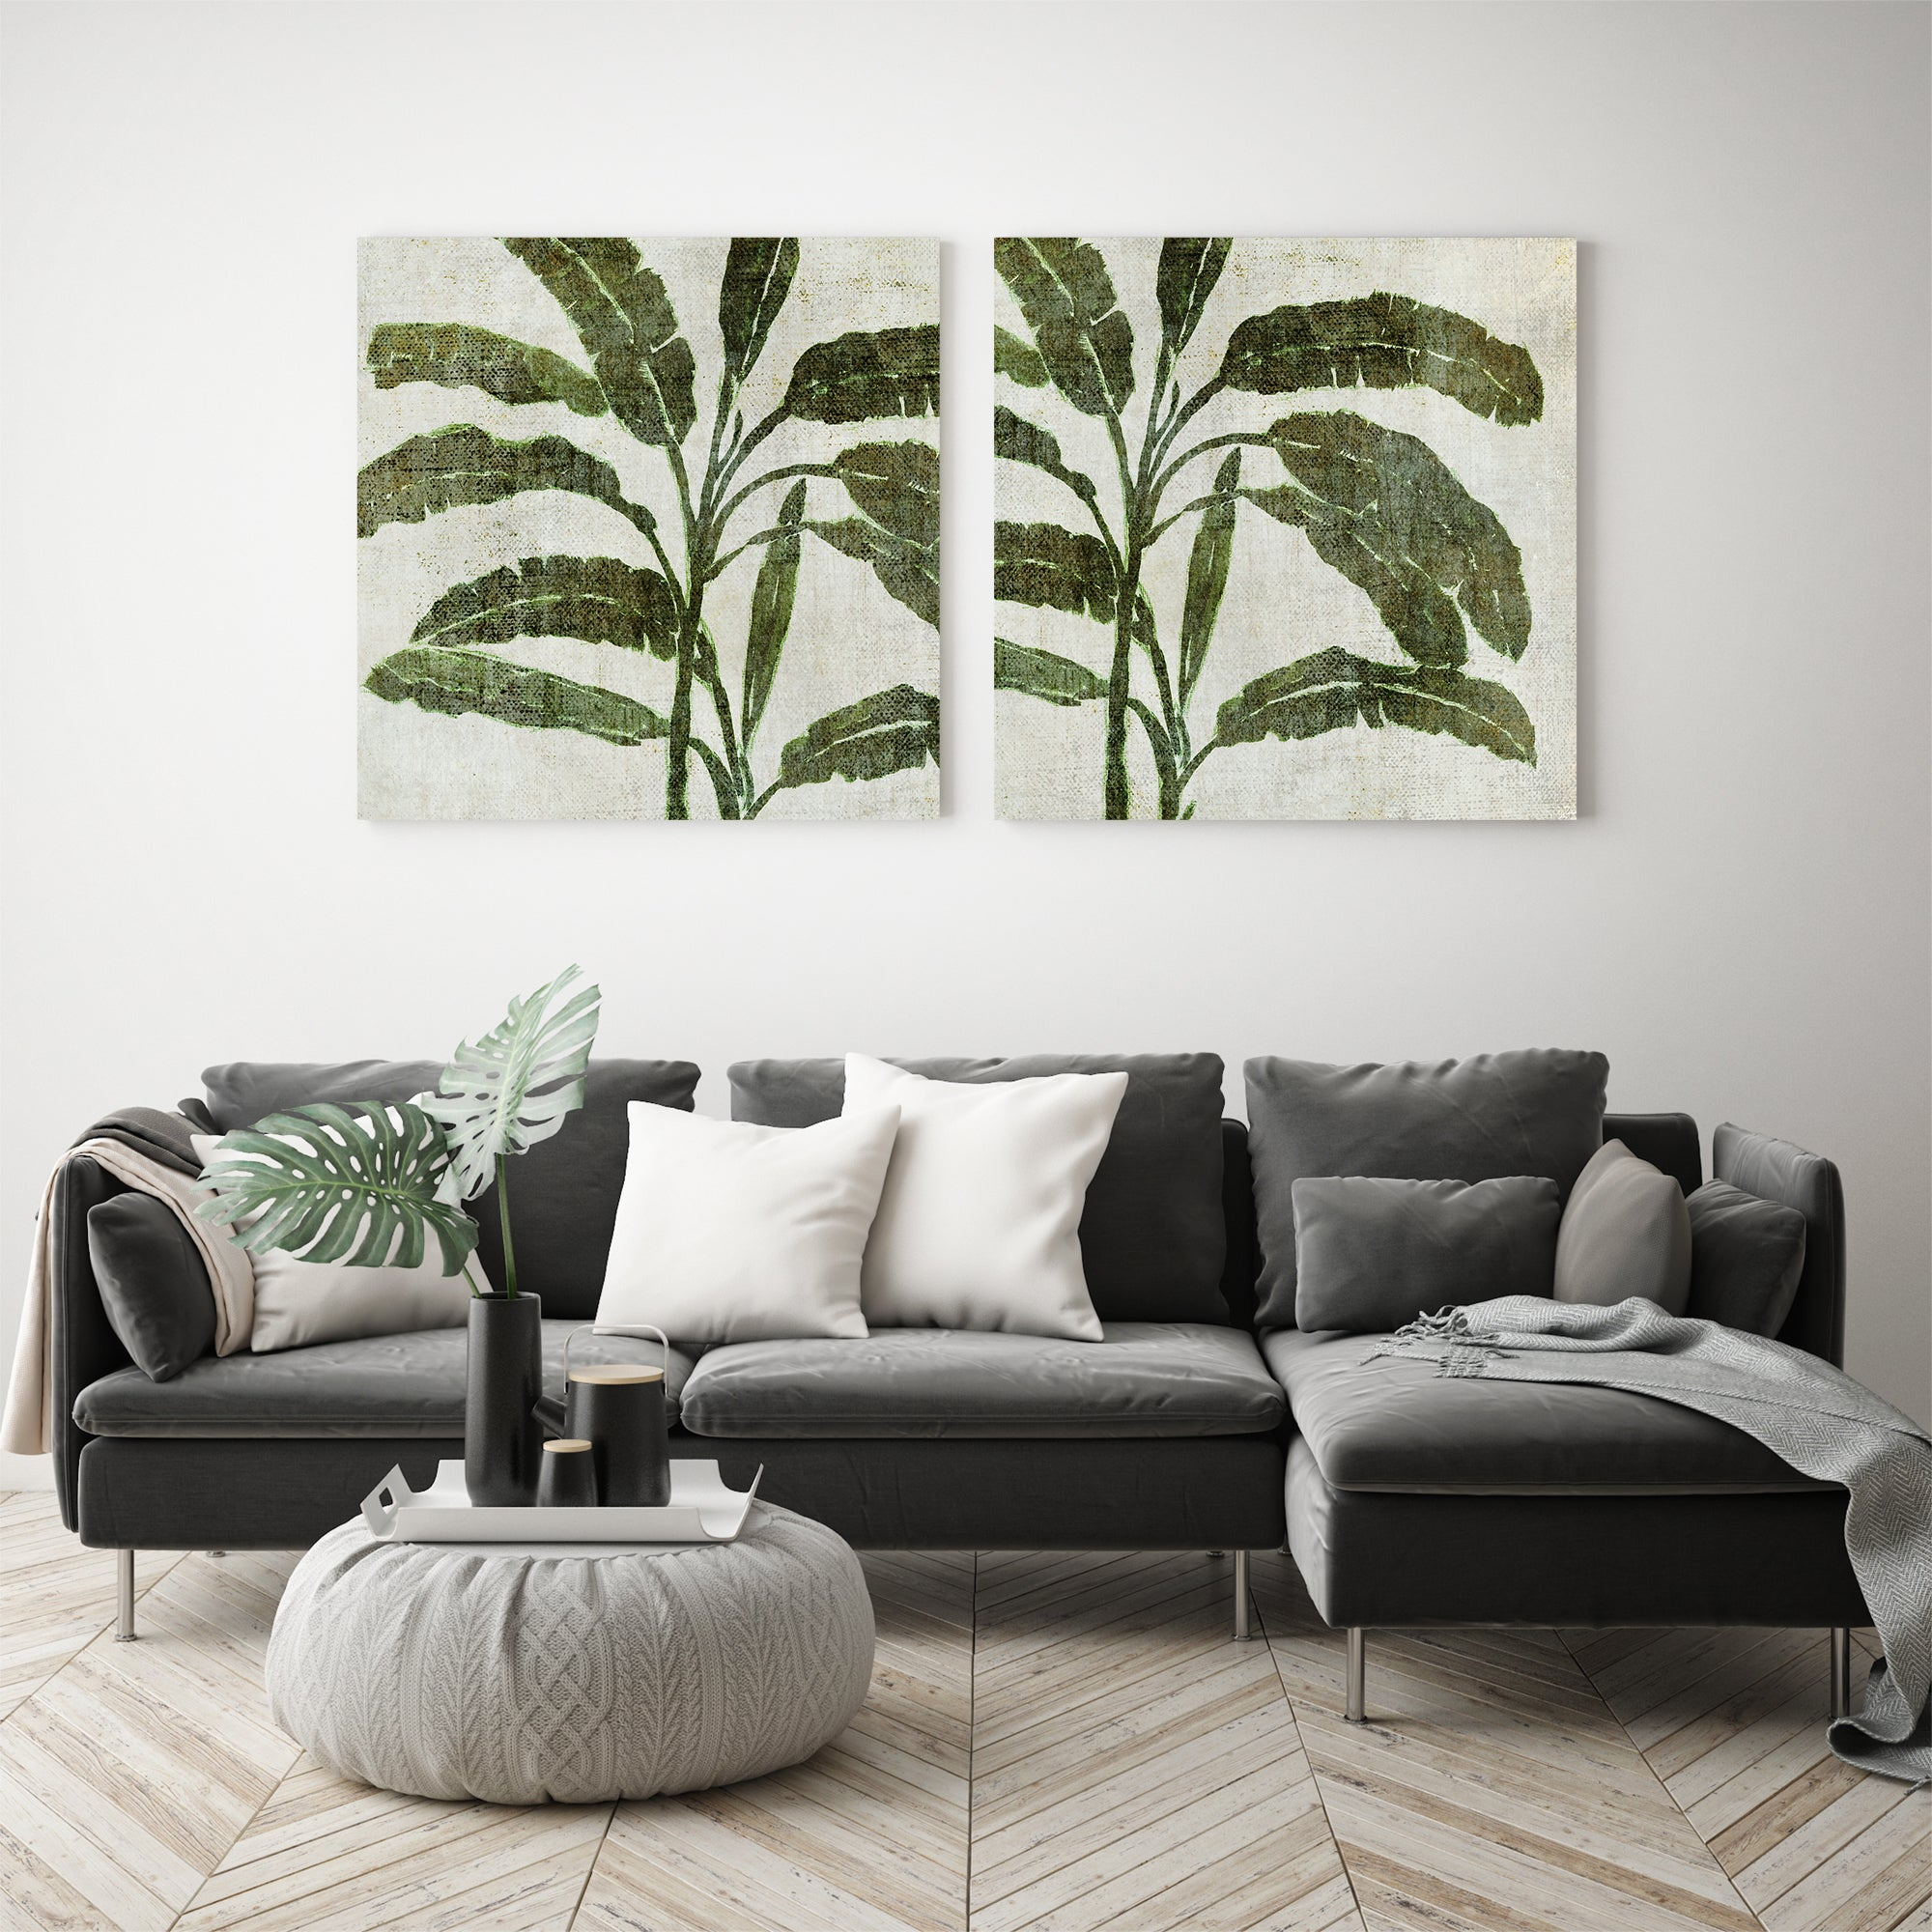 Green Banana Tree by Chaos & Wonder Design - 2 Piece Gallery Wrapped Canvas Set - Art Set - Americanflat